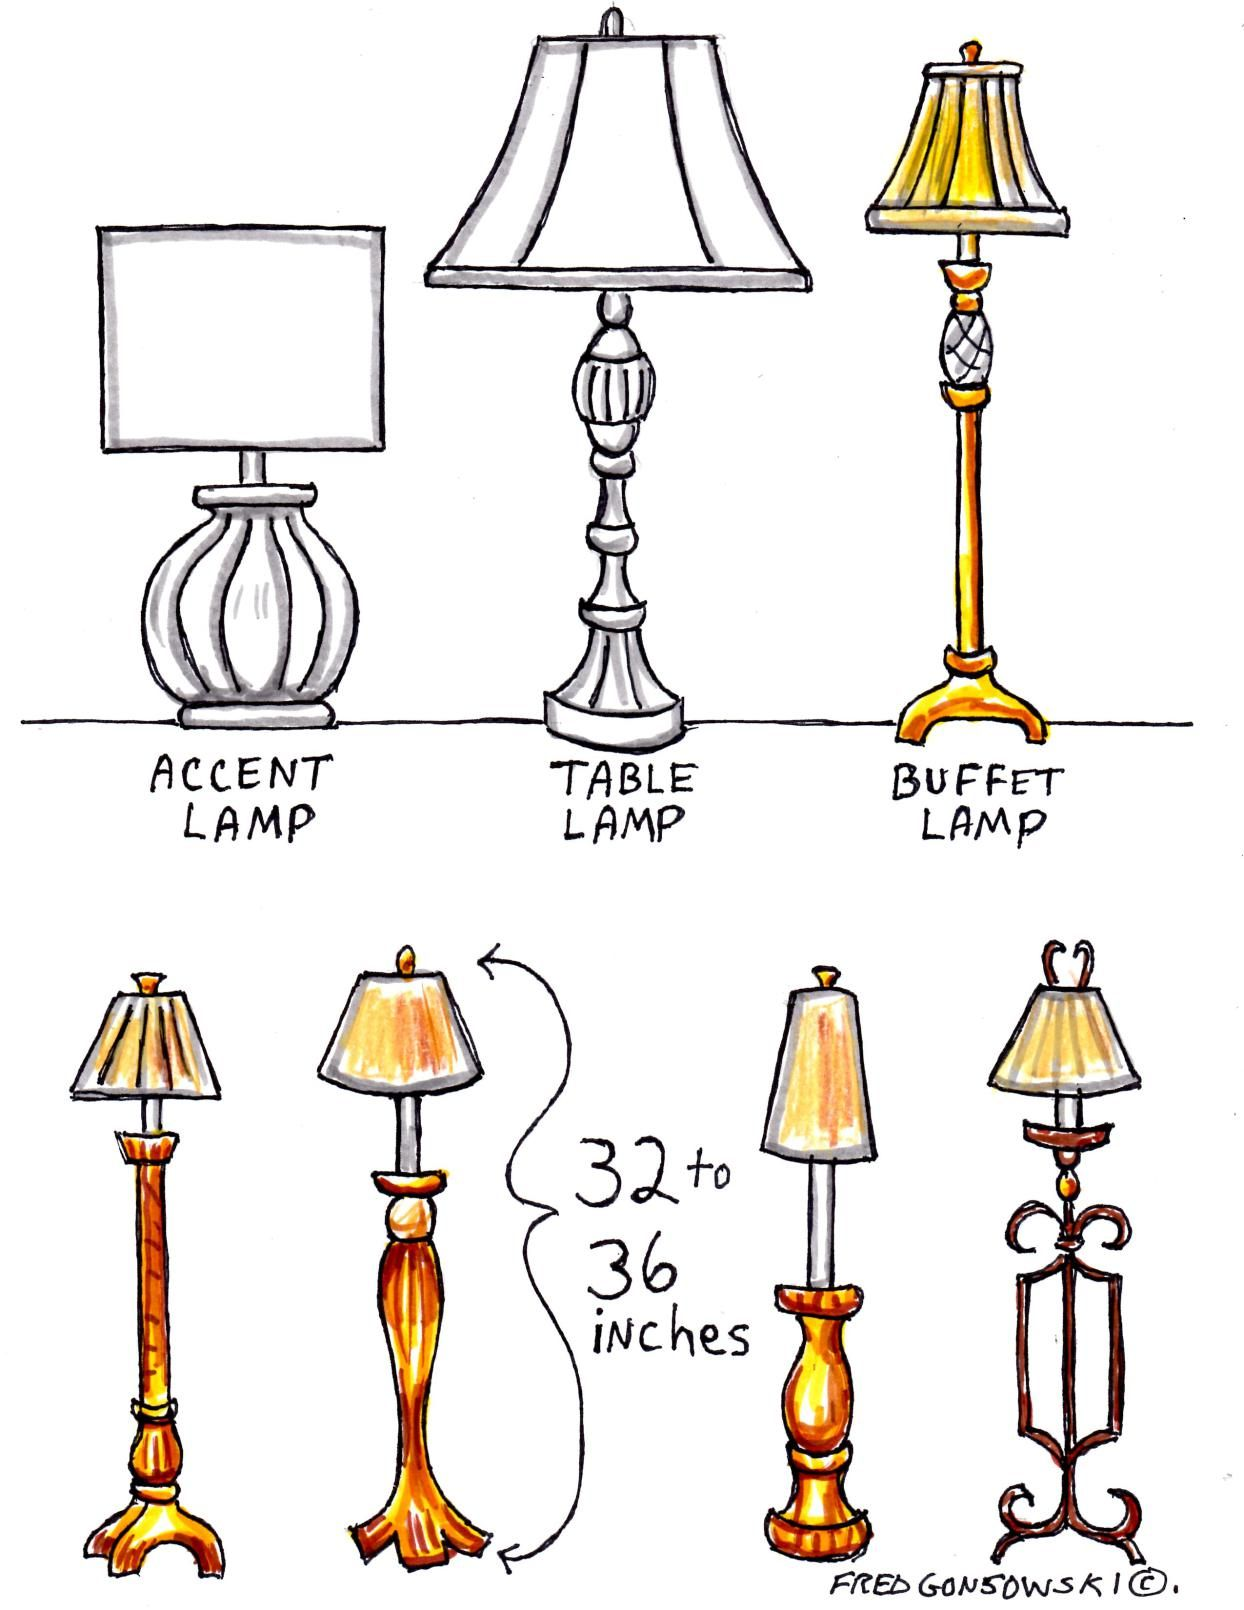 Interior Decorating With Buffet Lamps Buffet Lamps Buffet Decor